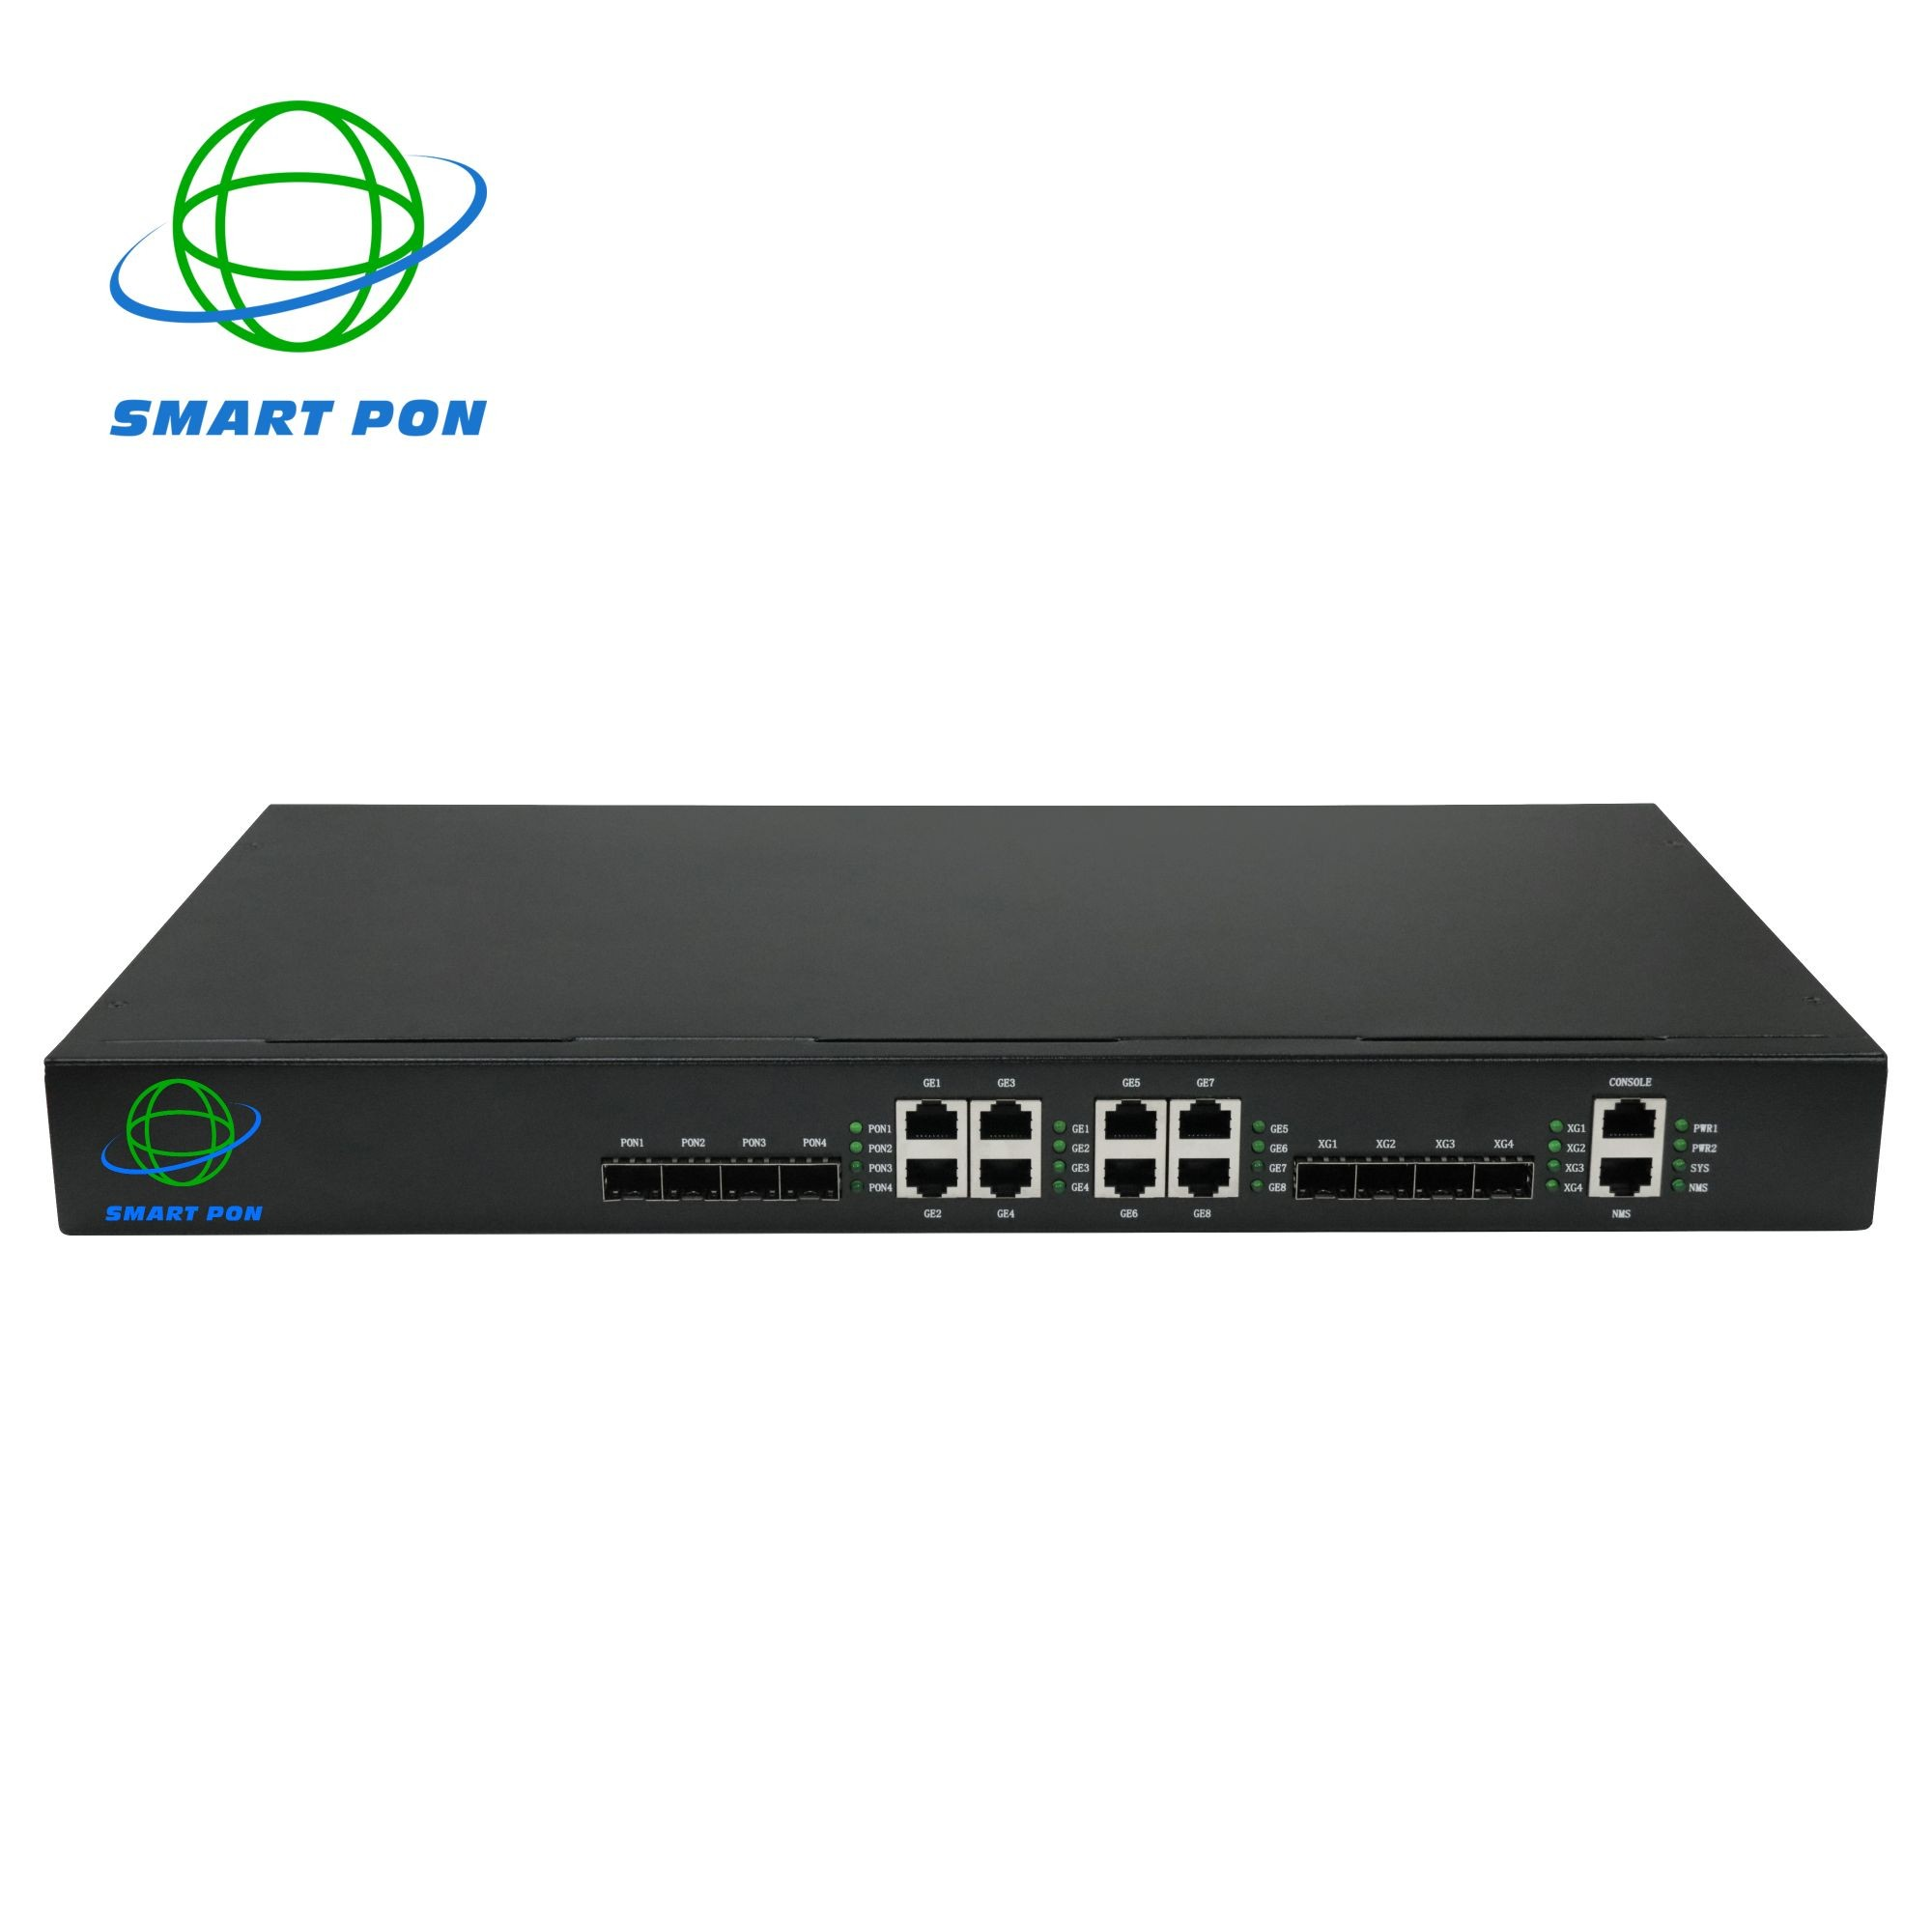 4port EPON OLT L3 with WEB GUI